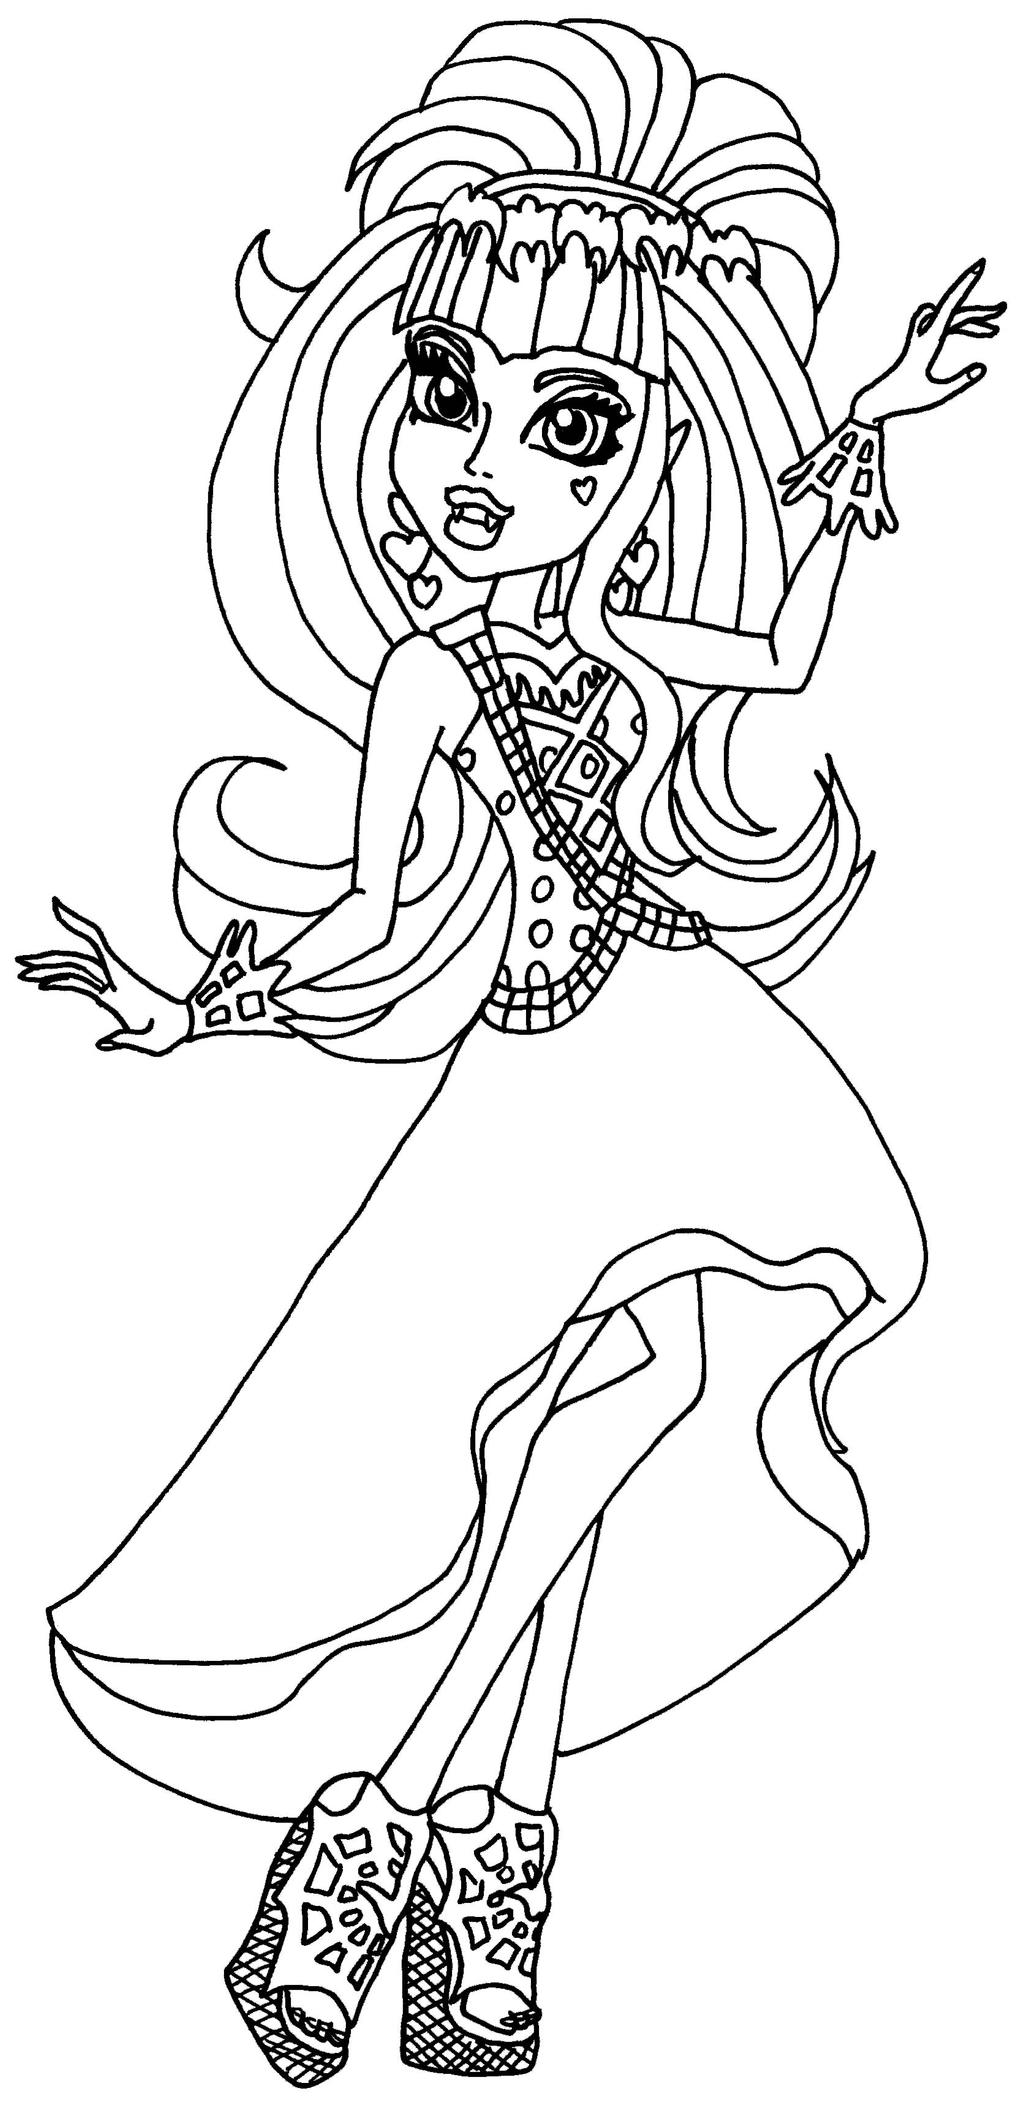 Draculaura 13 wishes by elfkena on deviantart for Draculaura monster high coloring pages